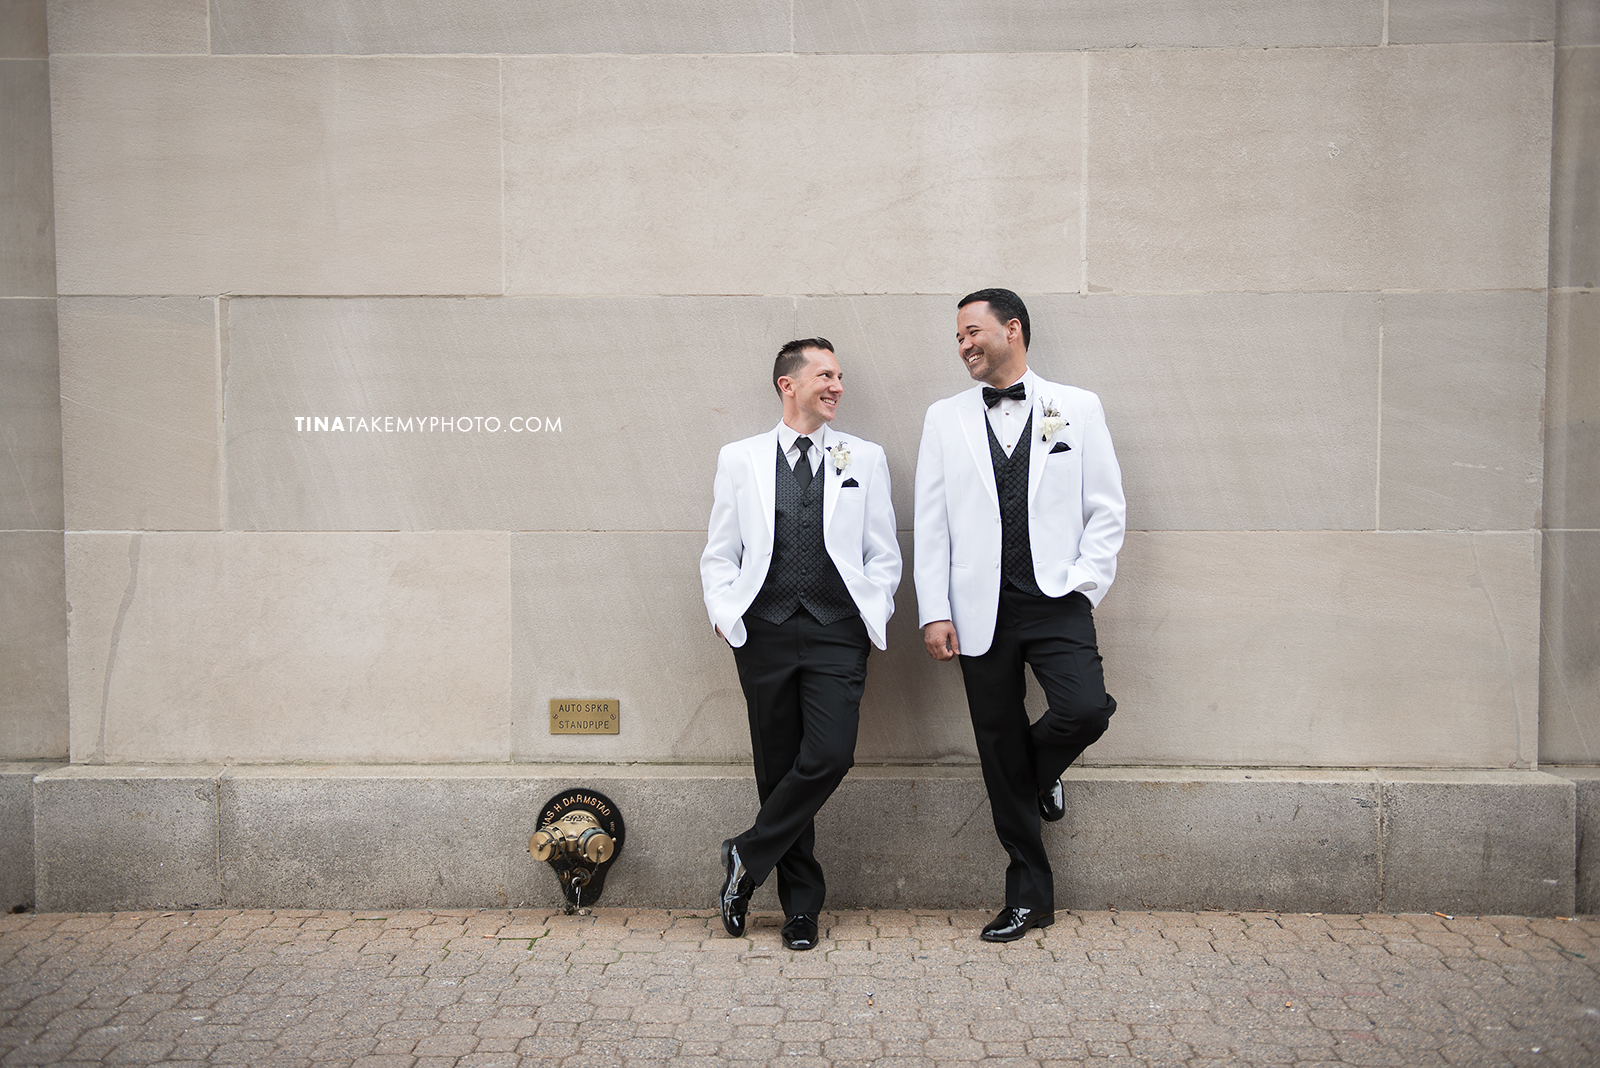 10-Washington-DC-Virginia-Gay-Same-Sex-Wedding-Men-12-13-14-Mayflower-City-Sidewalk-Photographer-White-Tuxedo